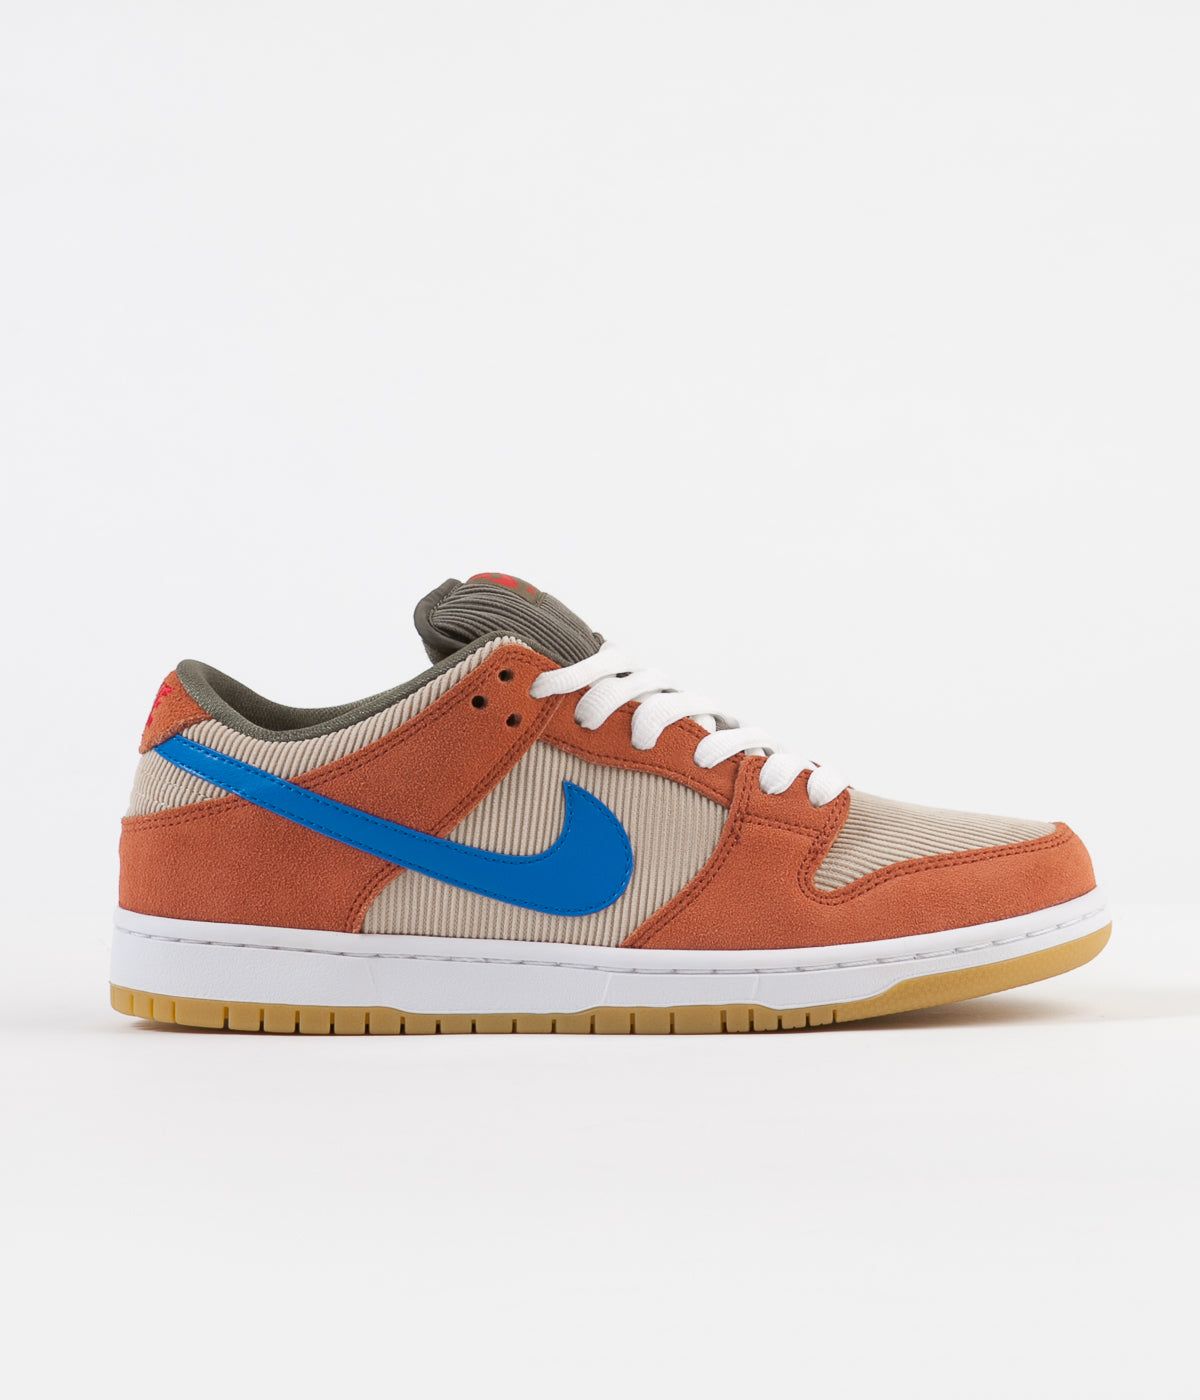 save up to 80% buy best info for Nike SB Dunk Low Pro Shoes - Dusty Peach / Photo Blue ...